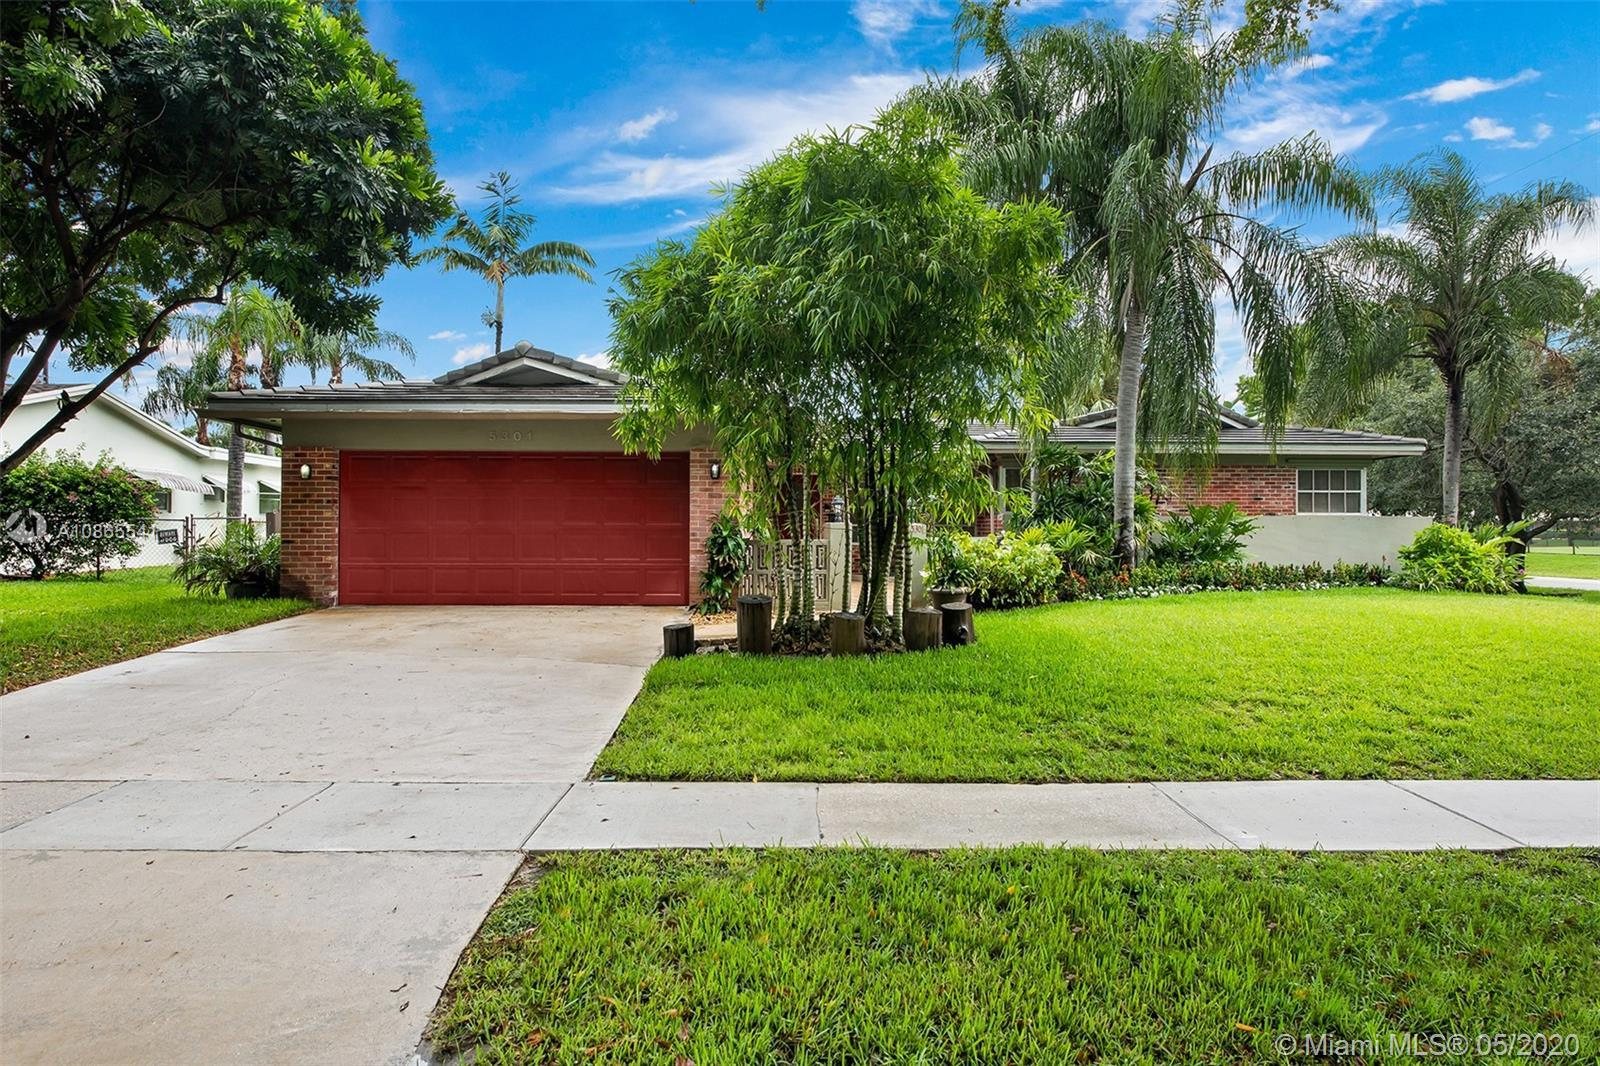 Stunning Hollywood Hills home! Fully updated 3 bedroom 3 bathroom house with an open floorplan. Conc